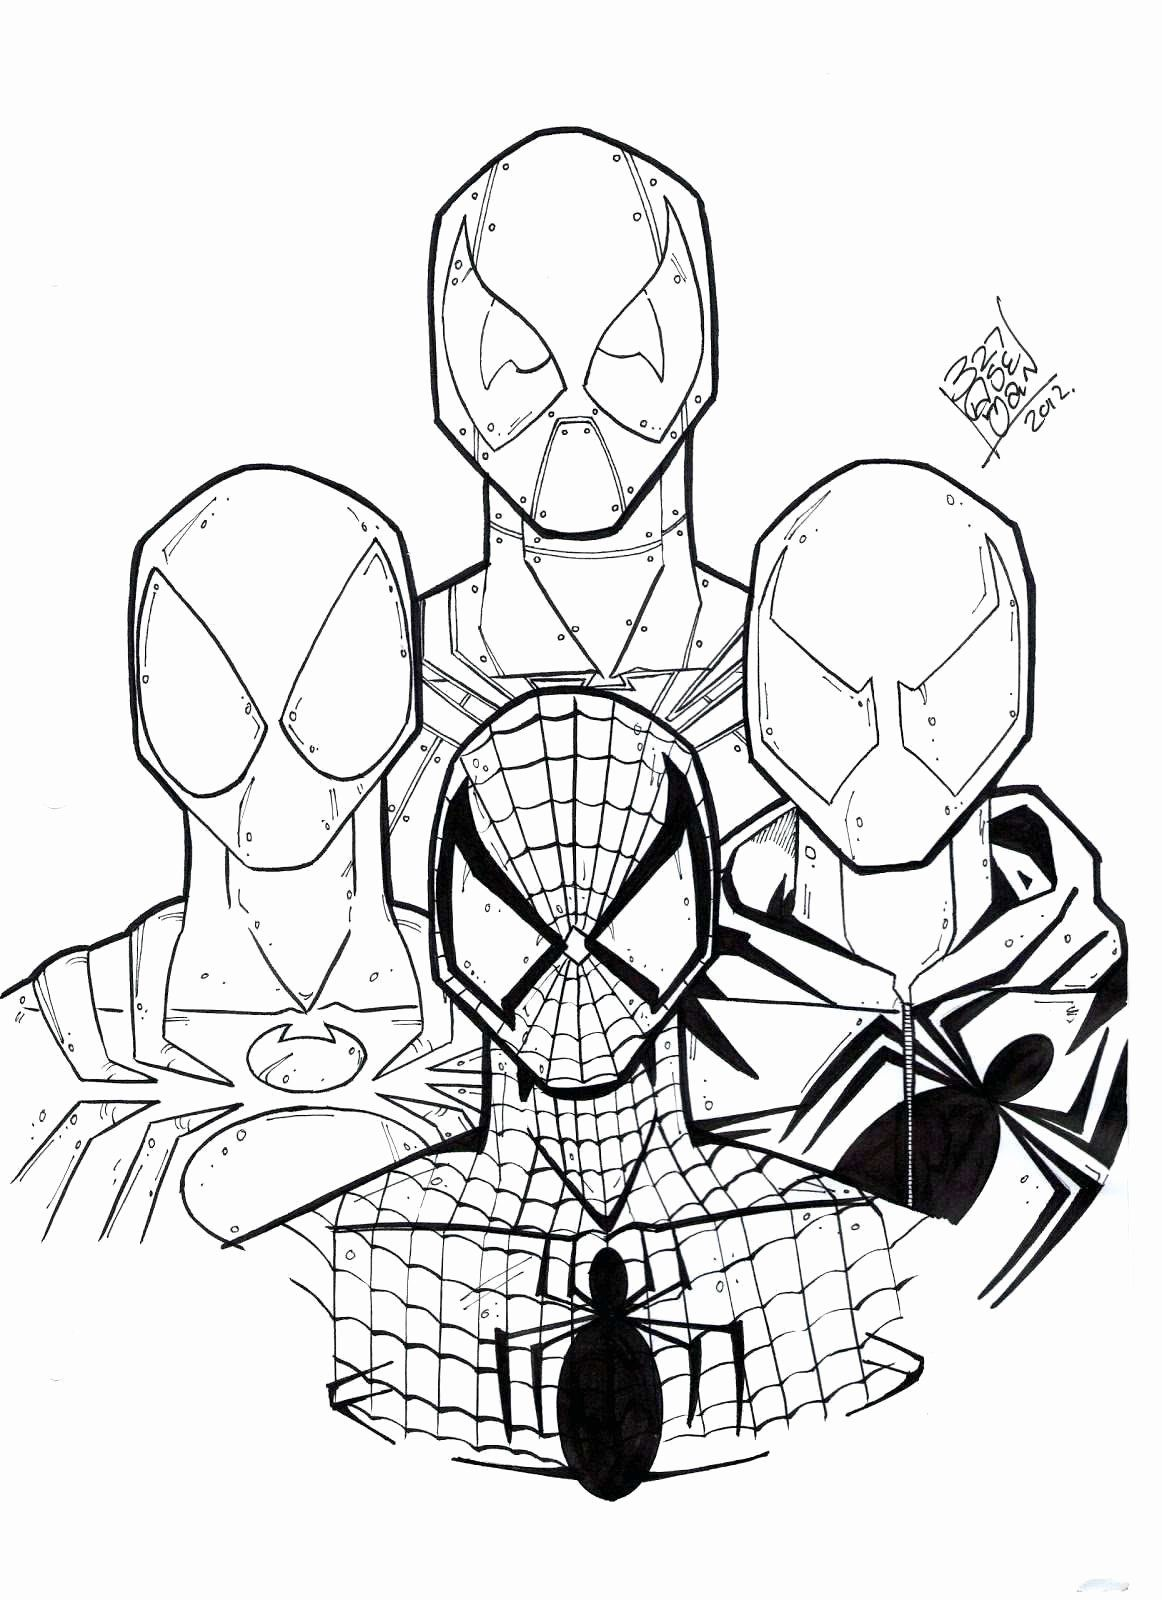 Die Hard Coloring Book Inspirational Coloring Pages Spiderman Colouring Pages Food Coloring For In 2020 Spiderman Coloring Coloring Pages Valentine Coloring Pages